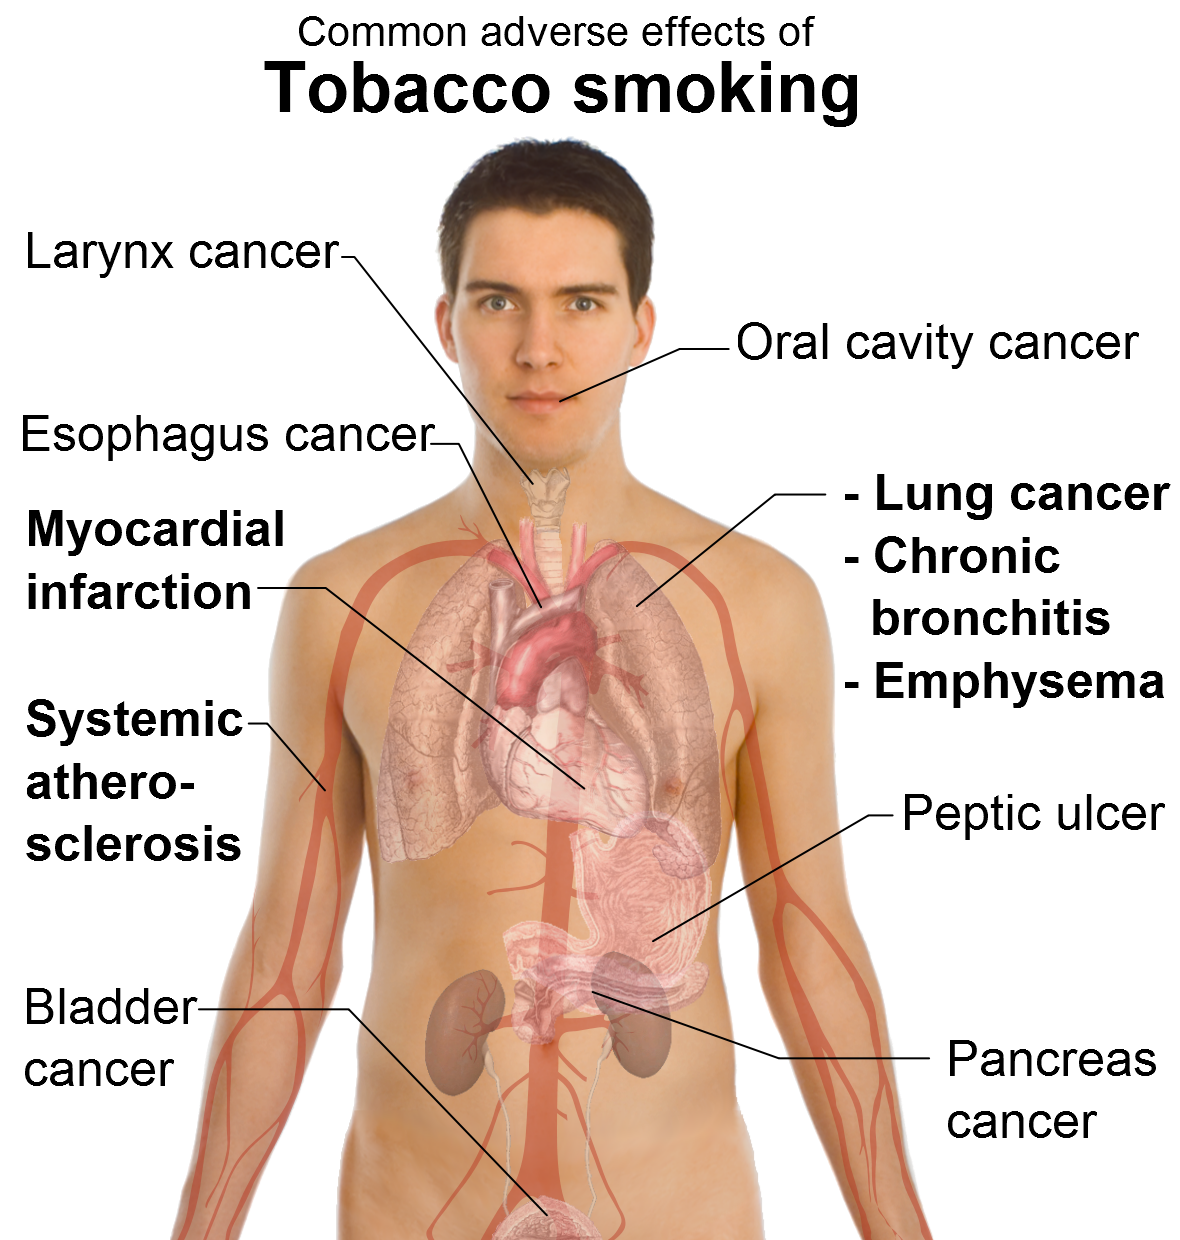 a description of the different harmful effects that your body can get from smoking When you smoke, these various chemicals get into the bloodstream, are carried to all parts of the body and go right to the most susceptible cells tars found in cigarette tobacco are harmful because they can build up in the lungs, inflaming the linings of blood vessels and other soft tissues.